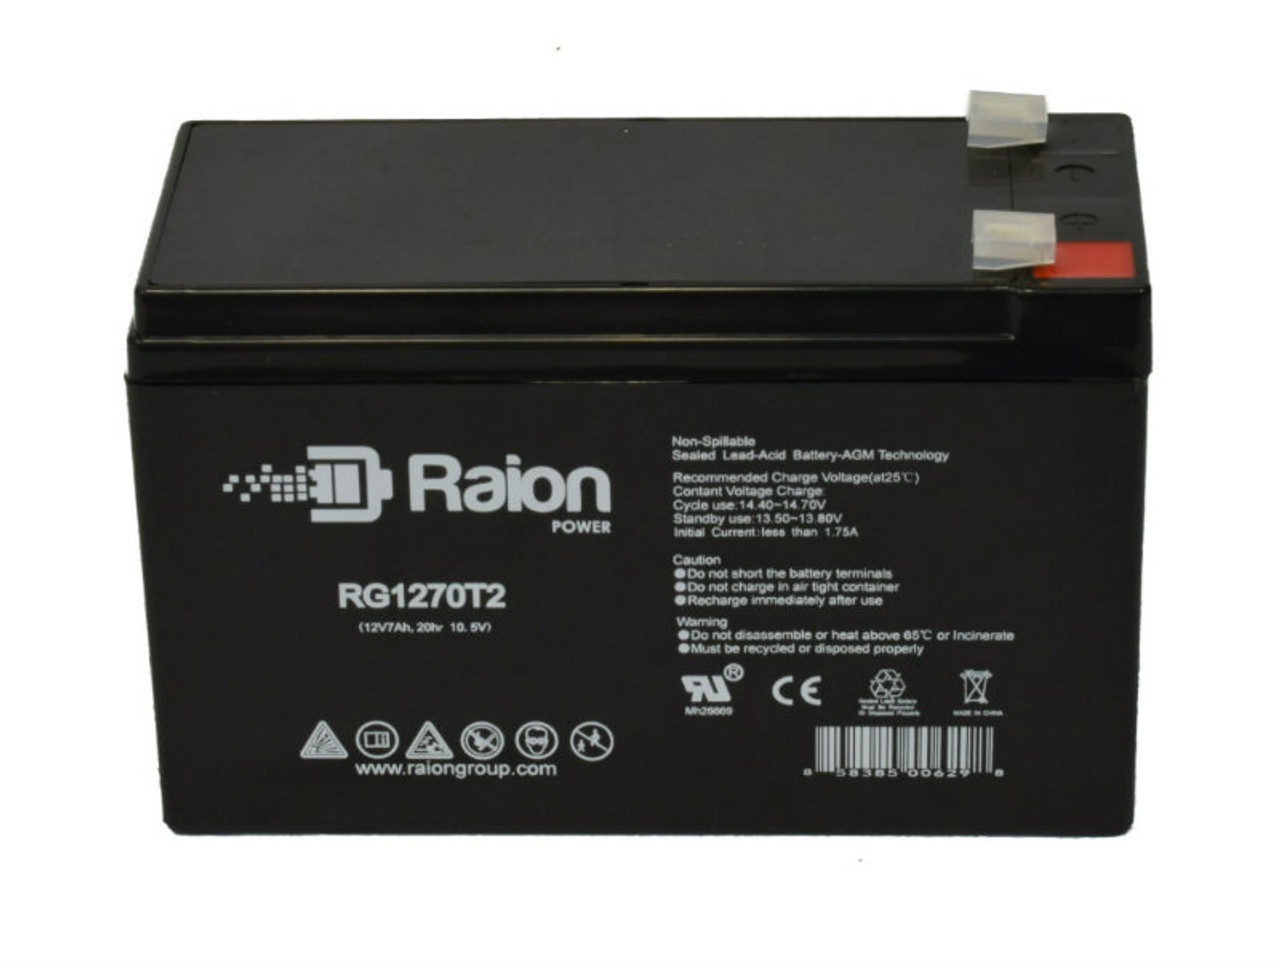 Raion Power 12V 7Ah SLA Battery With T1 Terminals For Johnson Controls JC1260